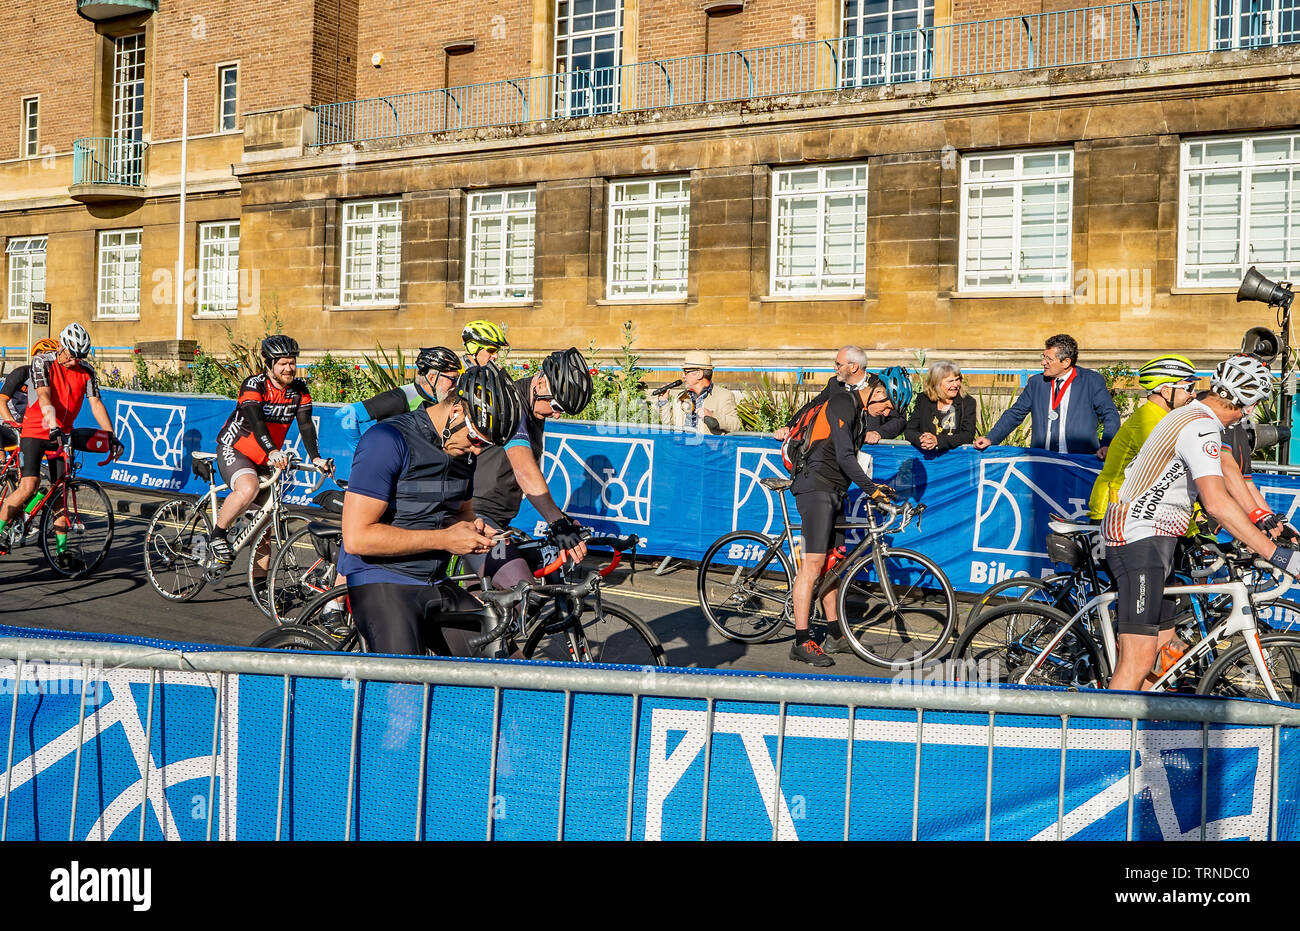 June 2019, Norwich 100 bike ride:  Cyclists at the start of the cycling event waiting to embark on the one hundred mile tour of Norfolk - Stock Image